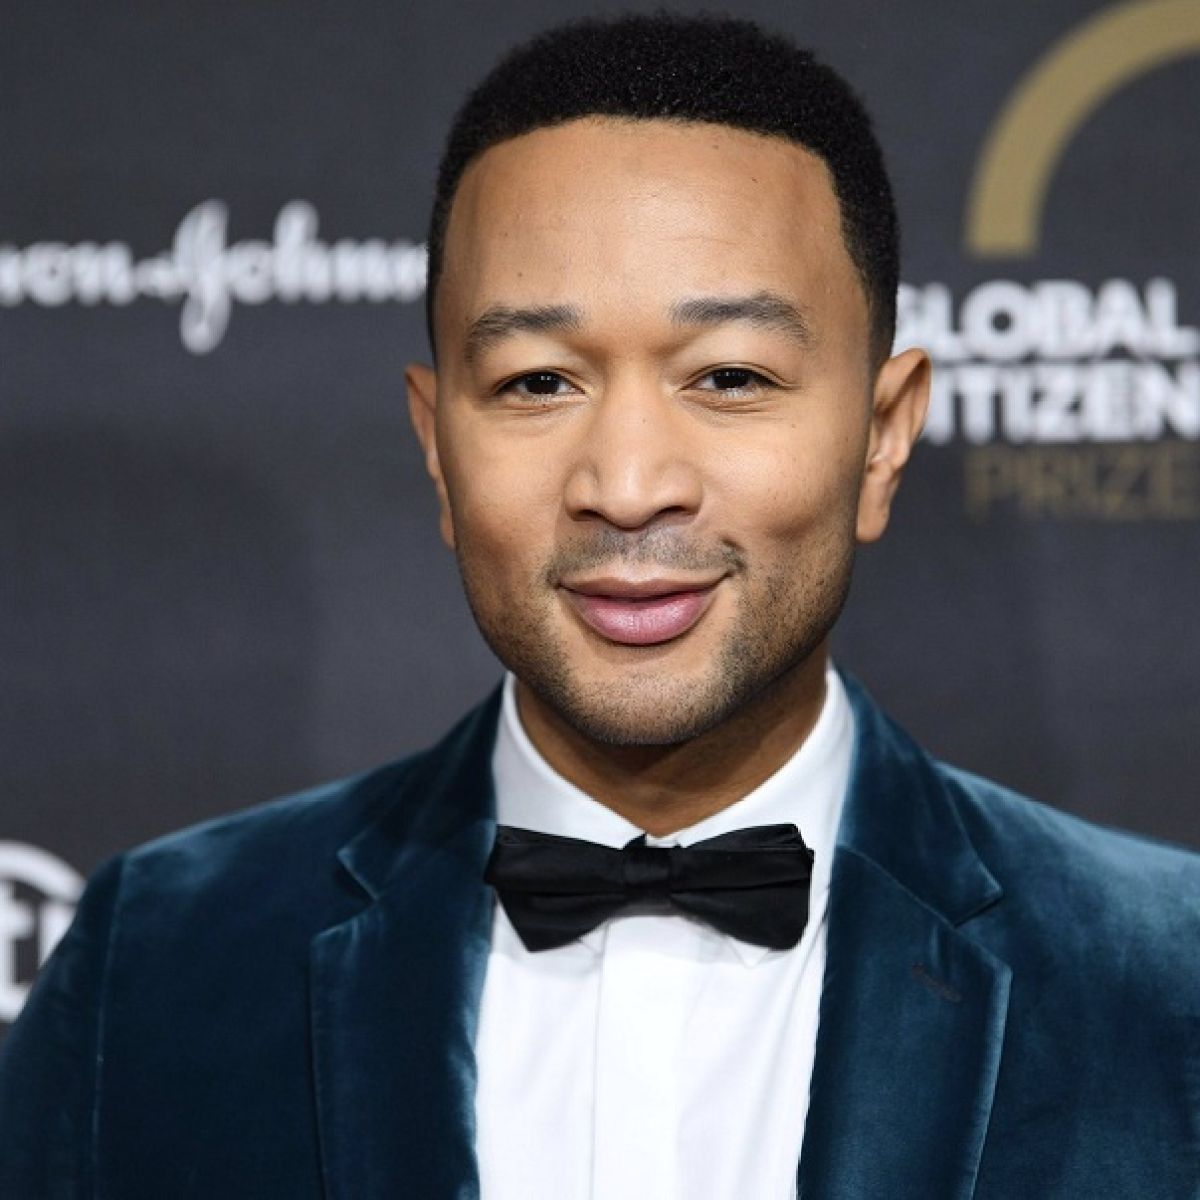 John Legend can see himself in George Floyd's place